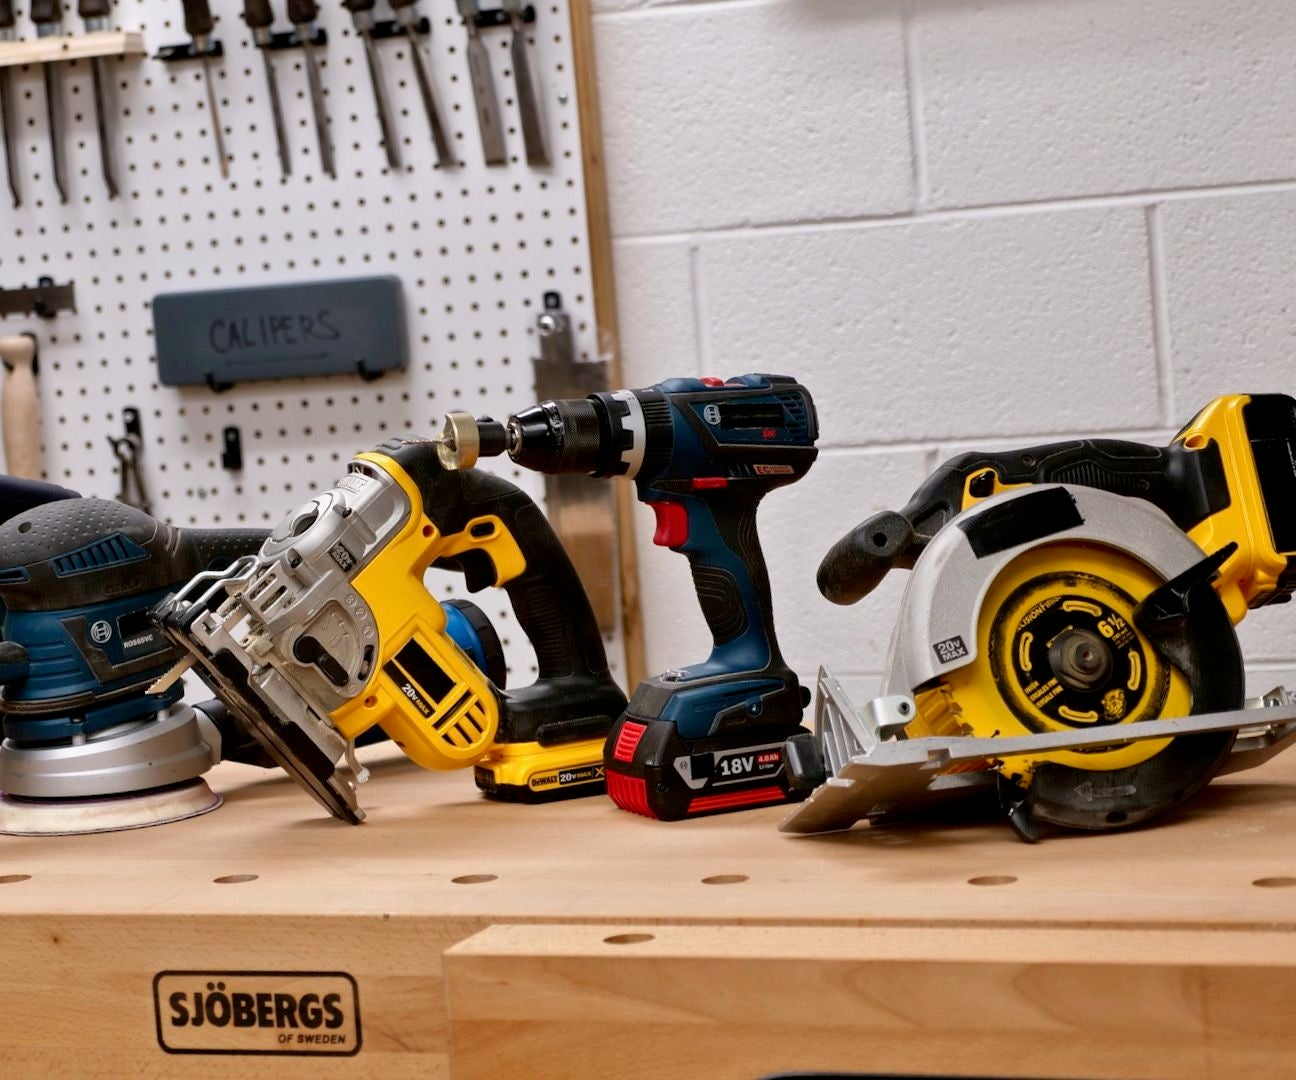 5 Woodworking Tools for Beginners : 6 Steps (with Pictures) - Instructables